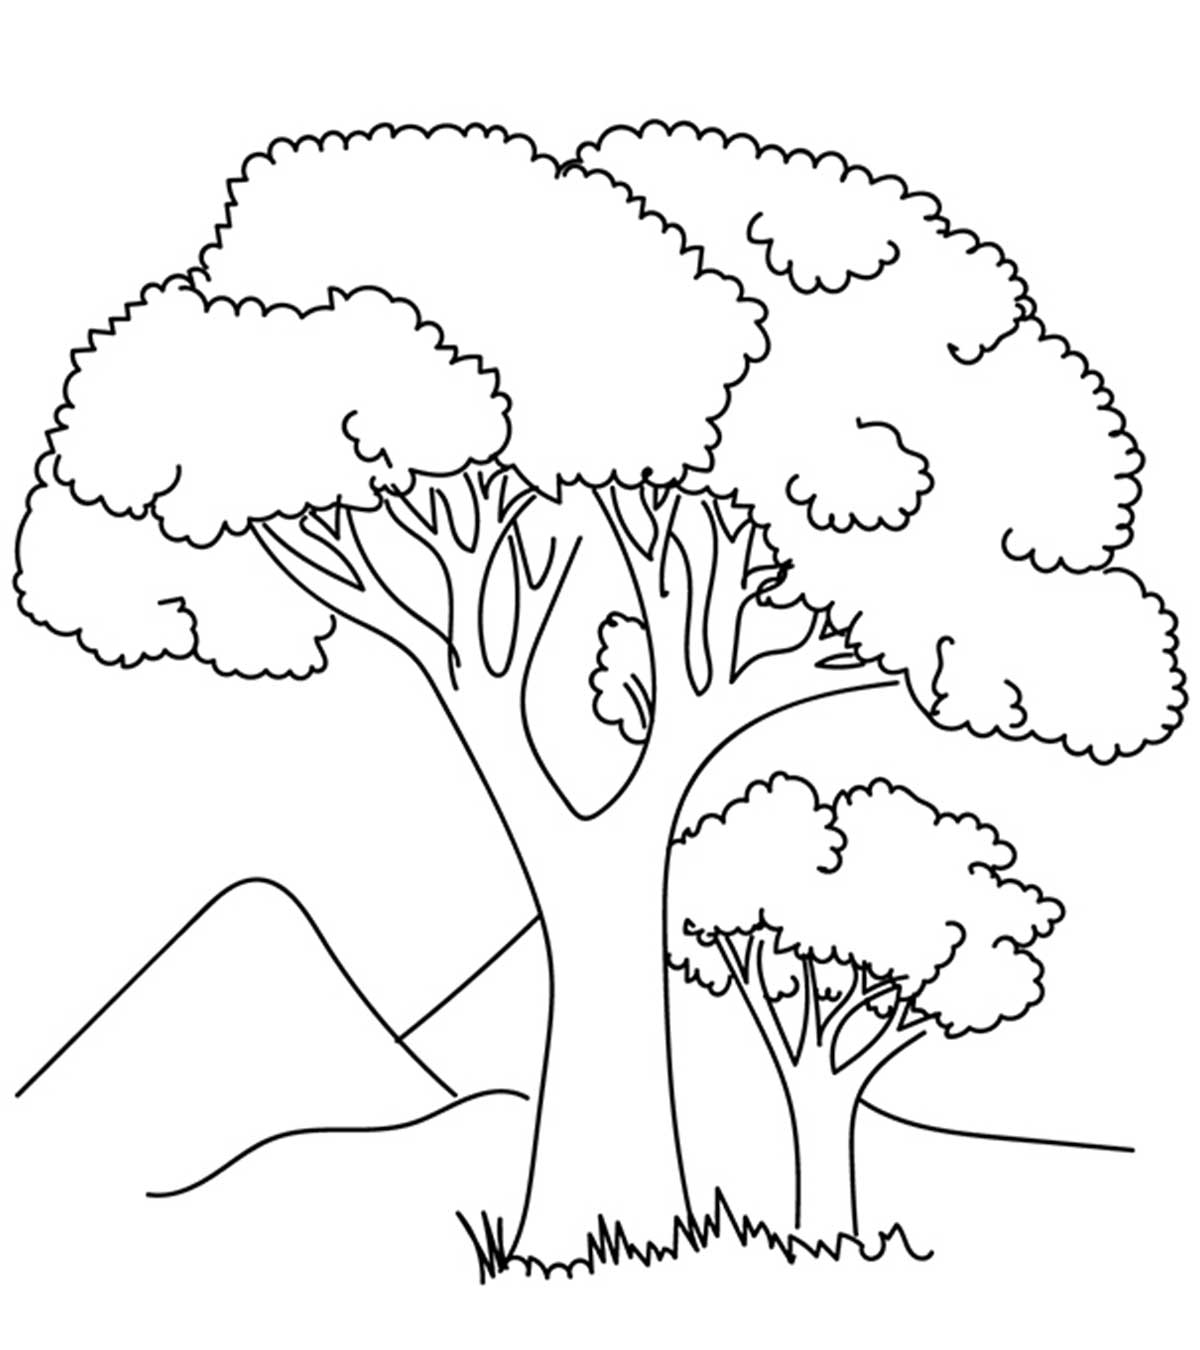 coloring page of a tree quottree of lifequot doodle art free adult coloring page karyn tree of coloring a page